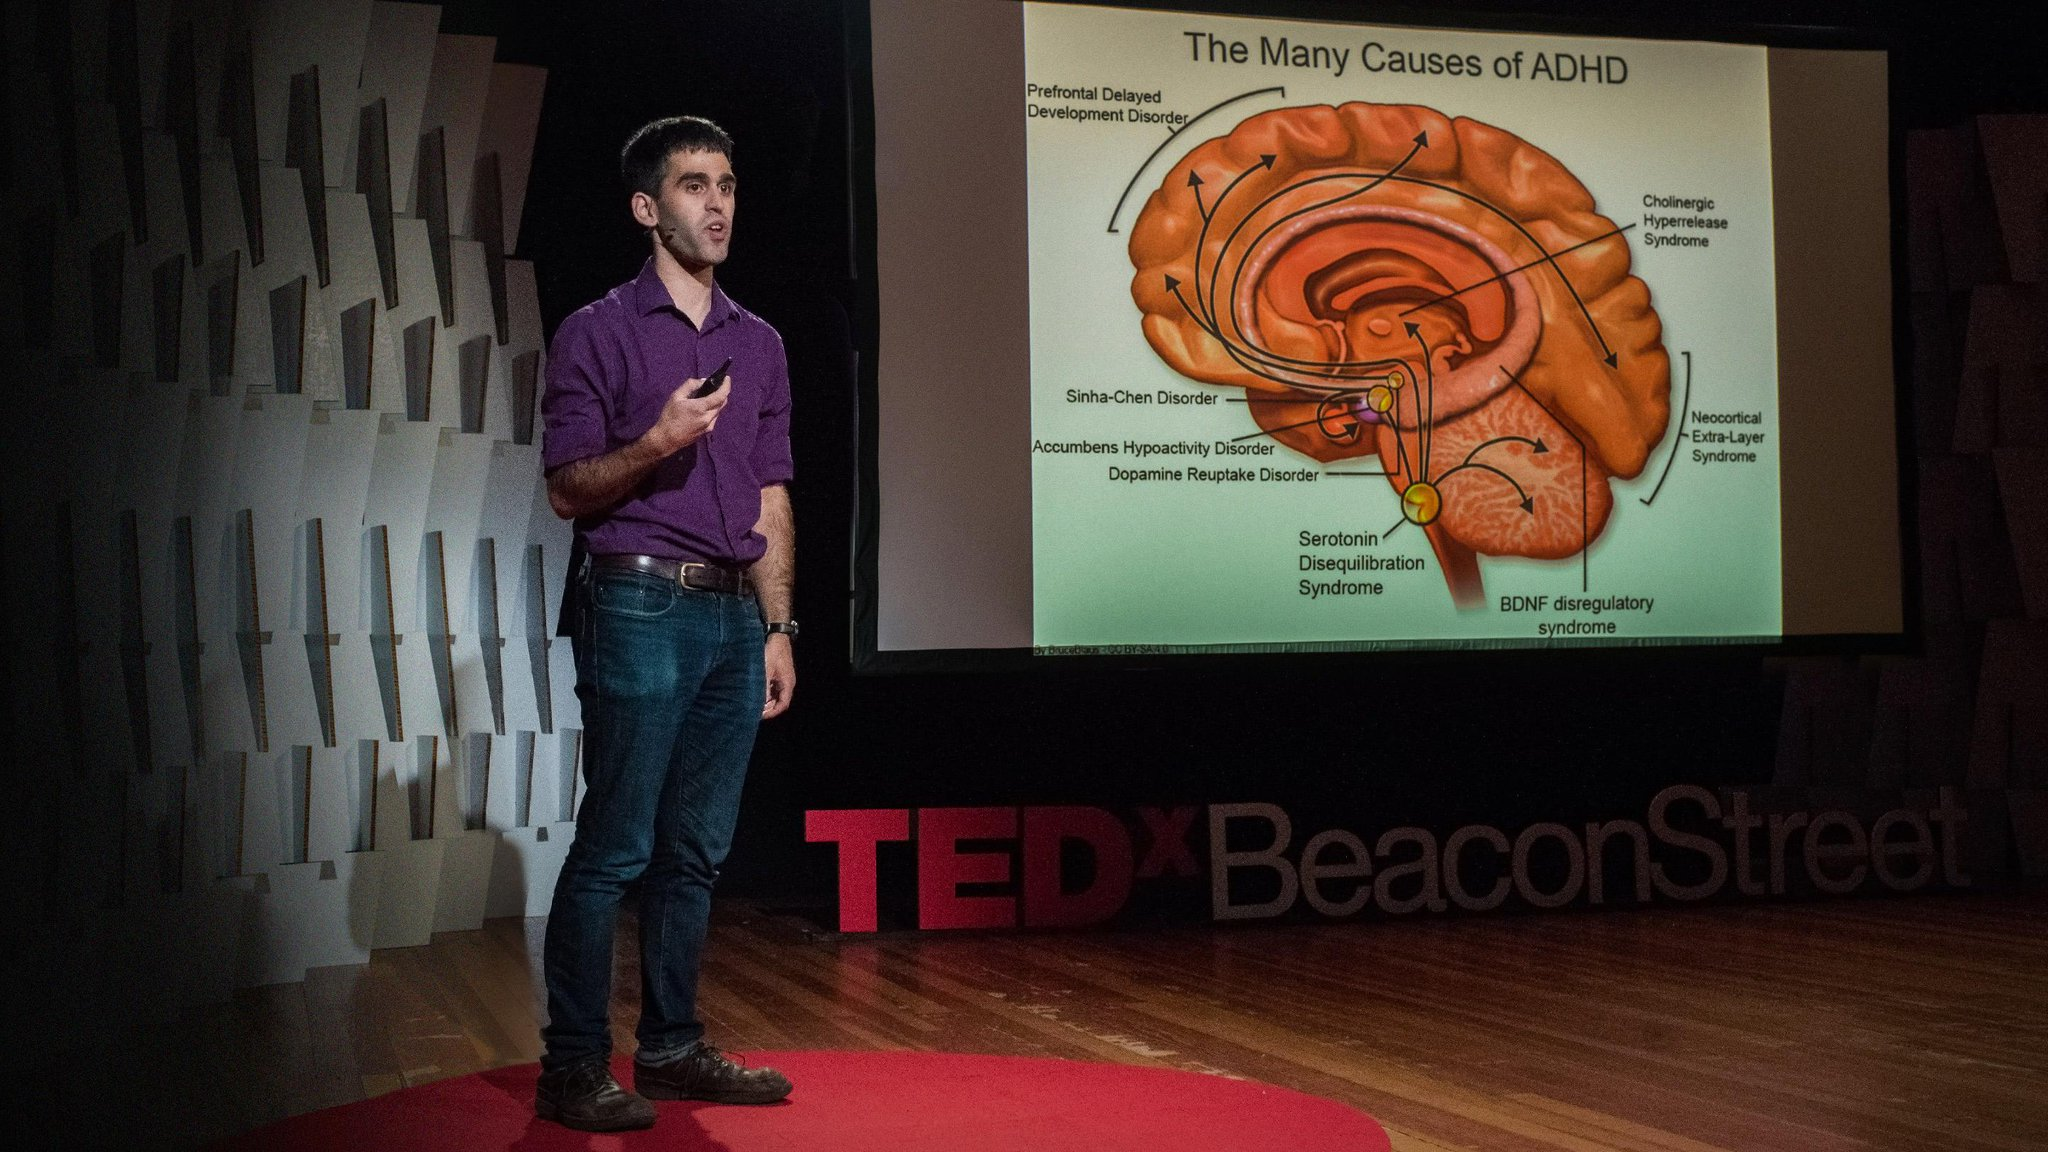 What we'll learn about your brain in the next century: https://t.co/CL6oE0nkLT https://t.co/5v7AH2B8kO